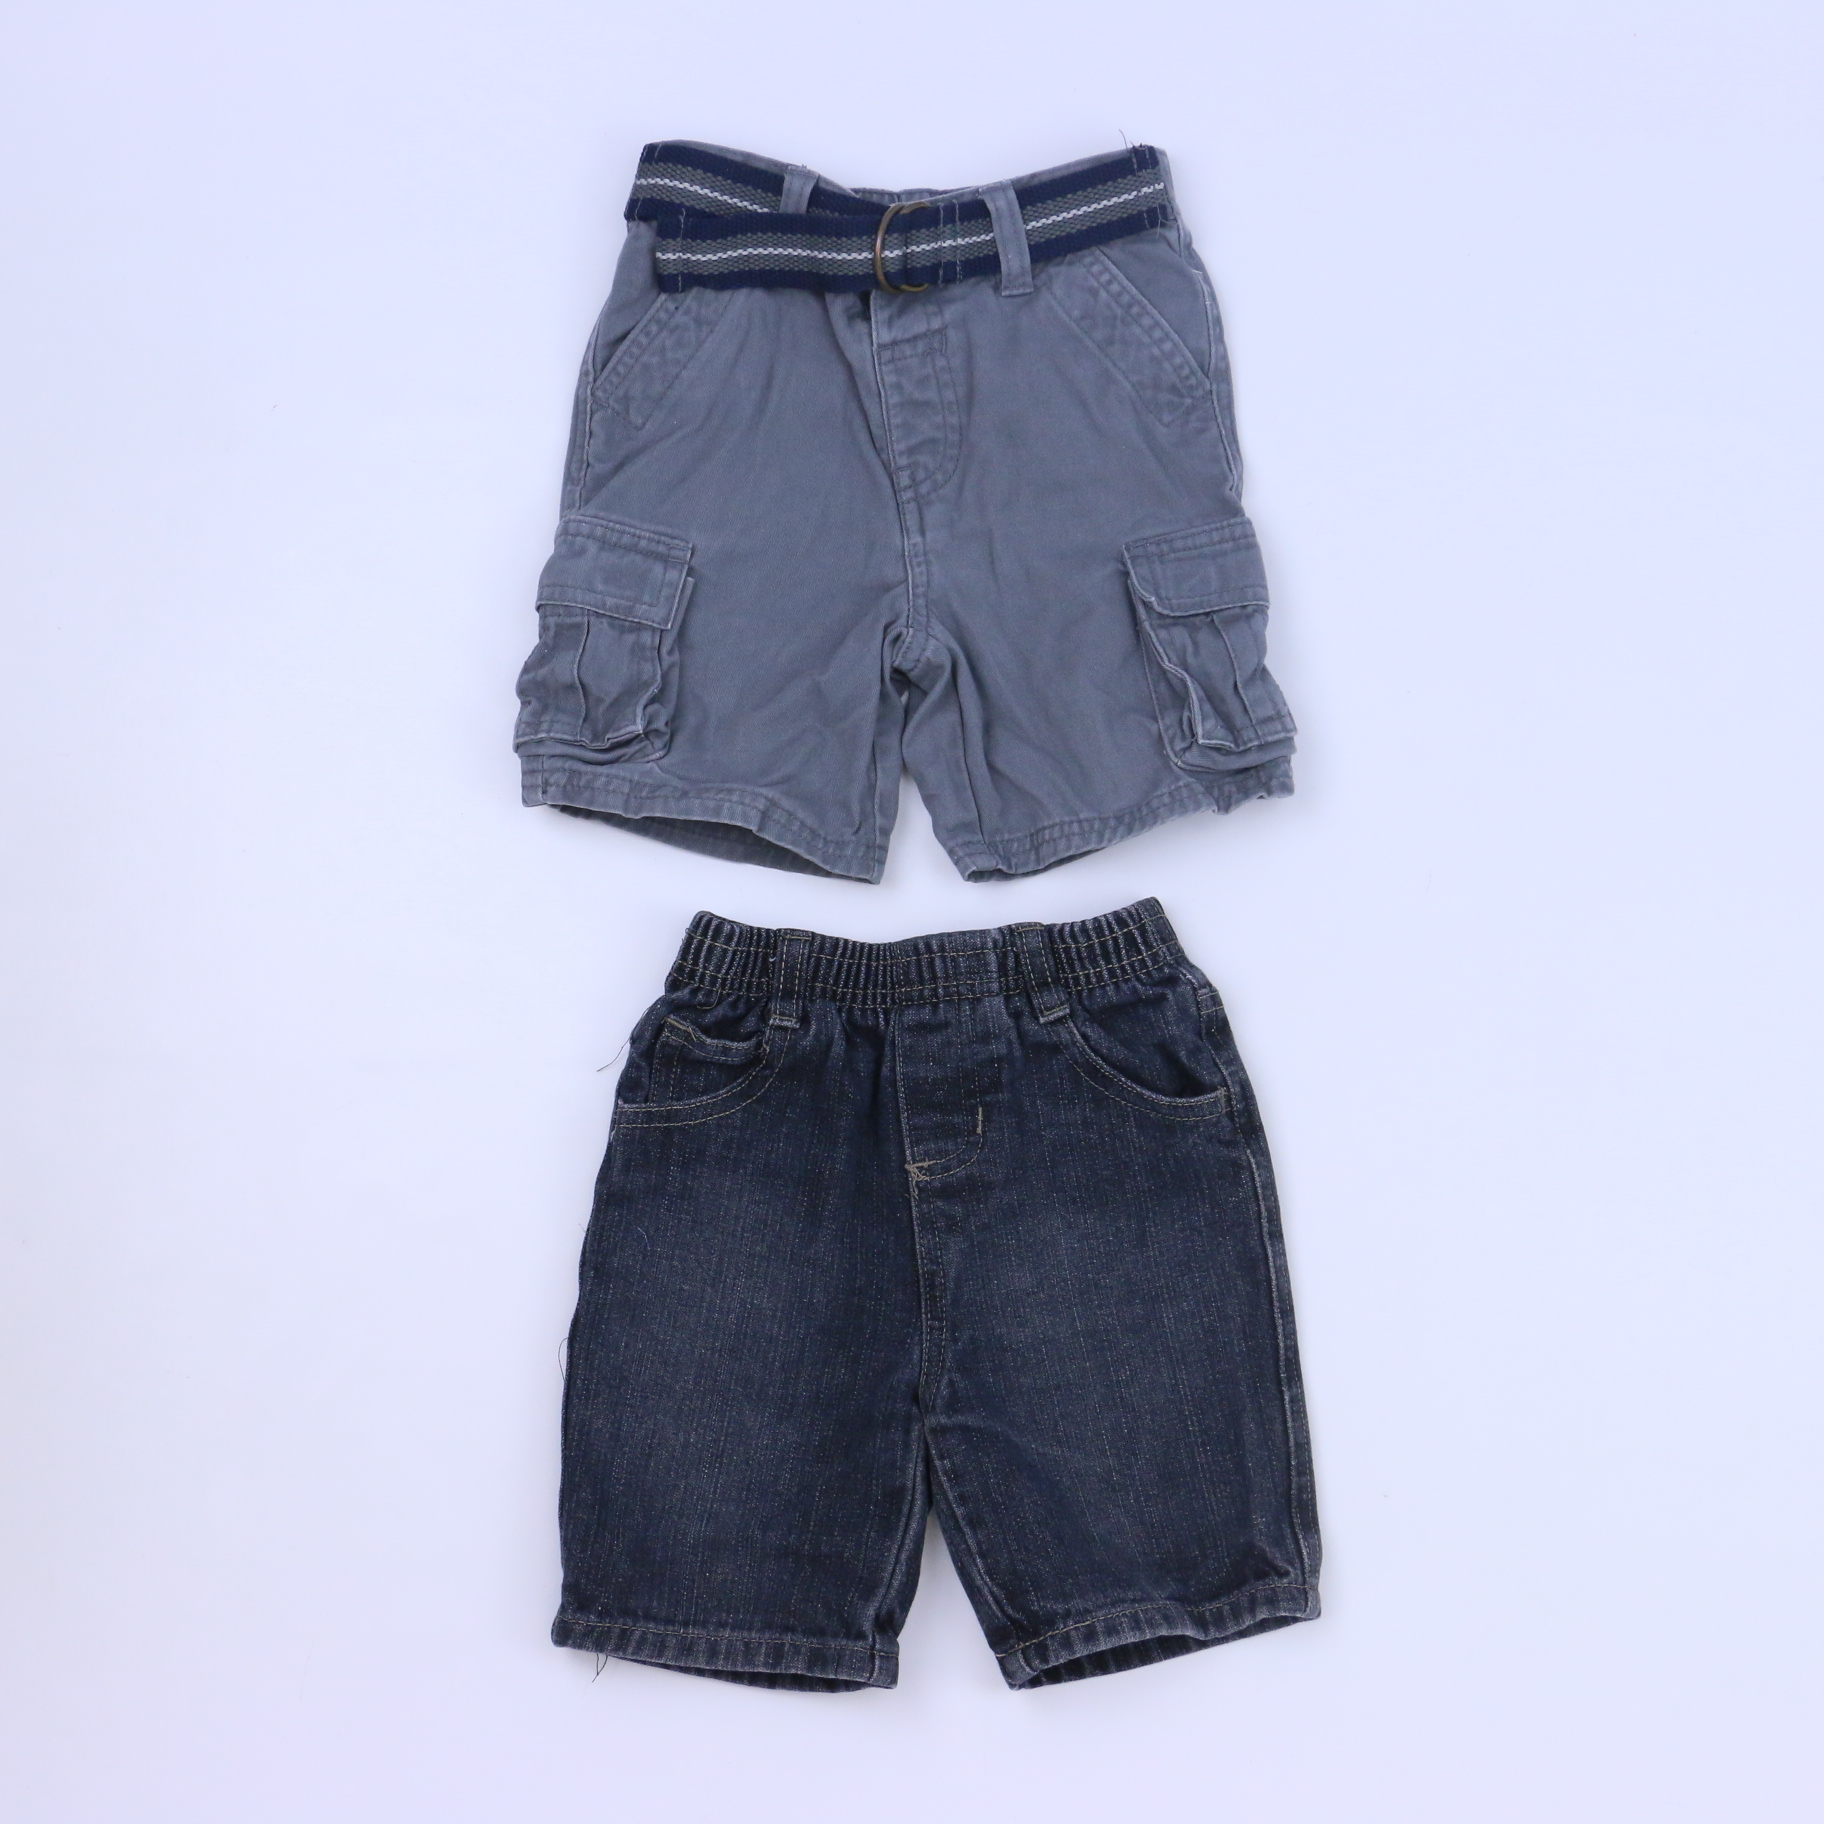 d6e4775d67df2 Set of 2 Cargo Shorts size: 18-24 Months - The Swoondle Society